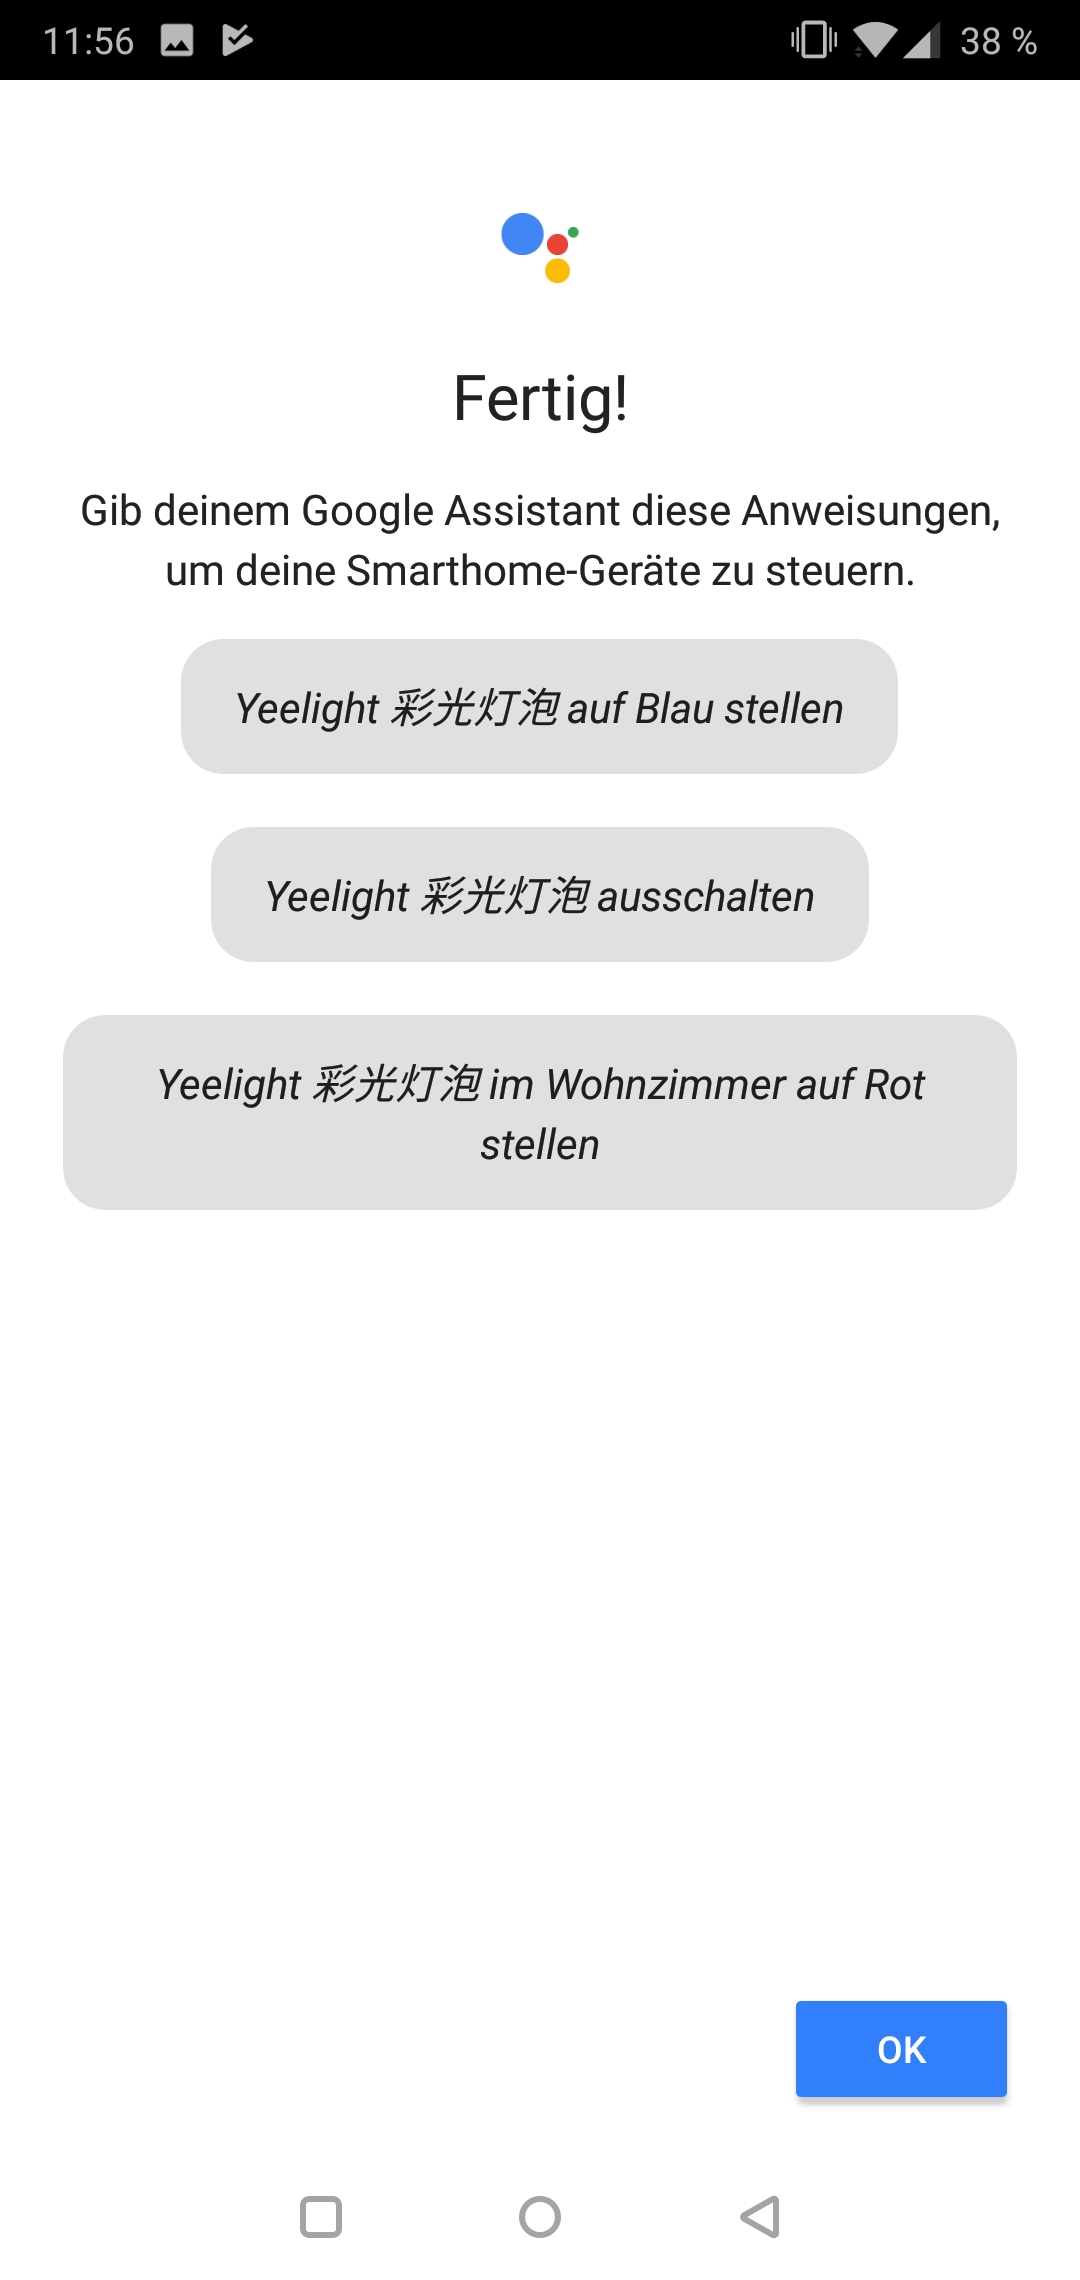 Yeelight 2nd Generation Smart Bulb Glühbirne Testbericht Screenshot Yeelight App Google Smart Home 11